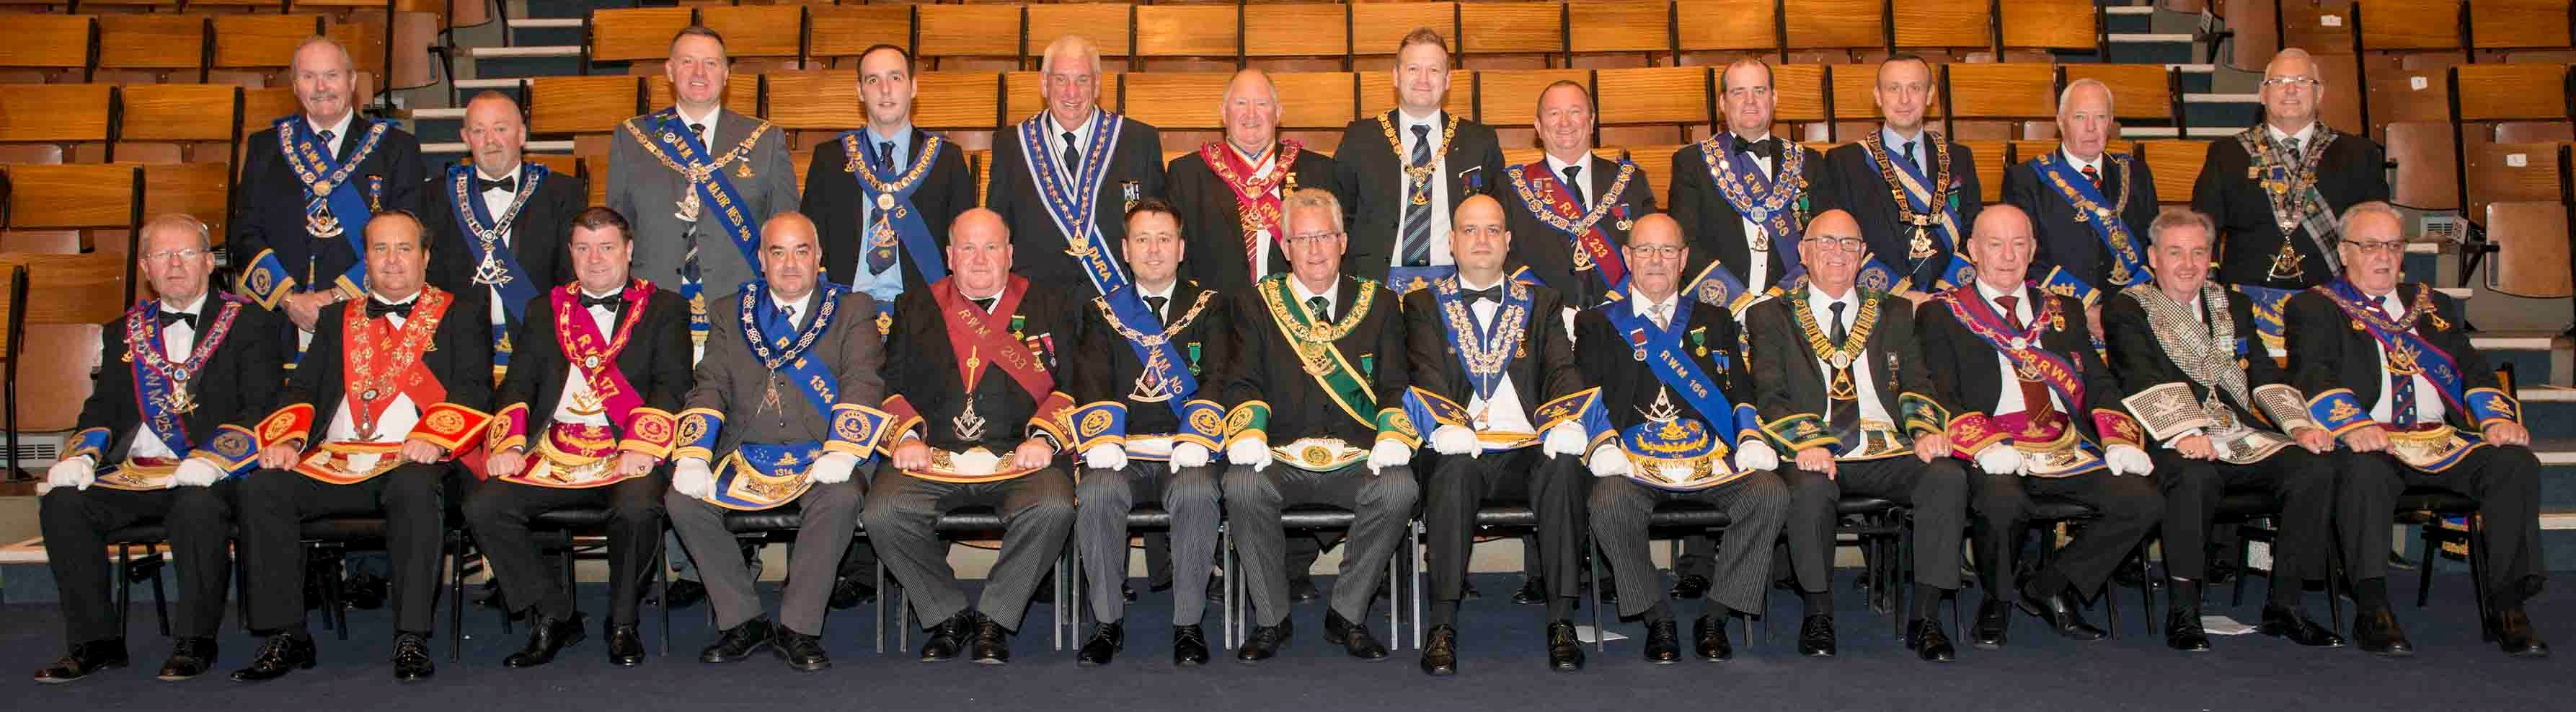 rwpgm-with-reigning-masters